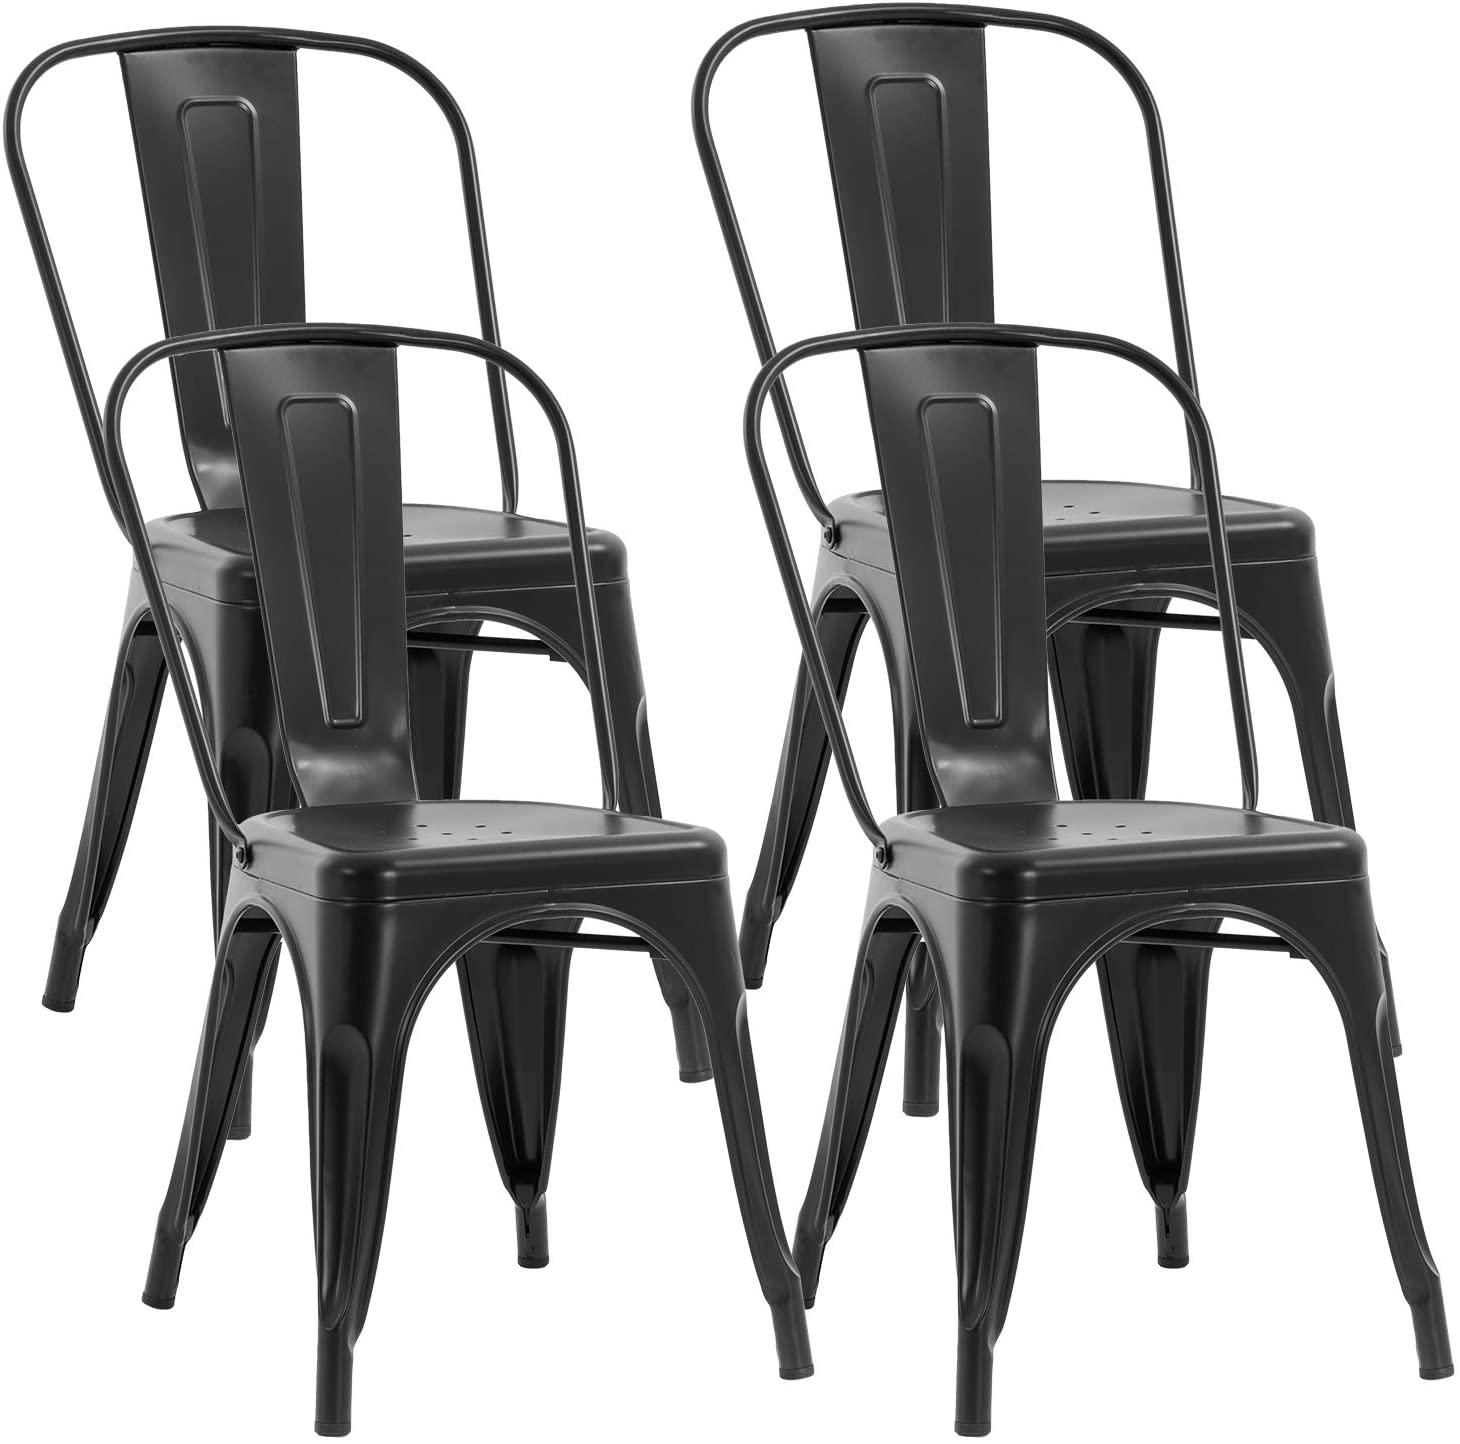 metal chair dining chairs set of 4 patio chair 18 inches seat height dining room kitchen chair tolix restaurant chairs trattoria bar stackable chairs